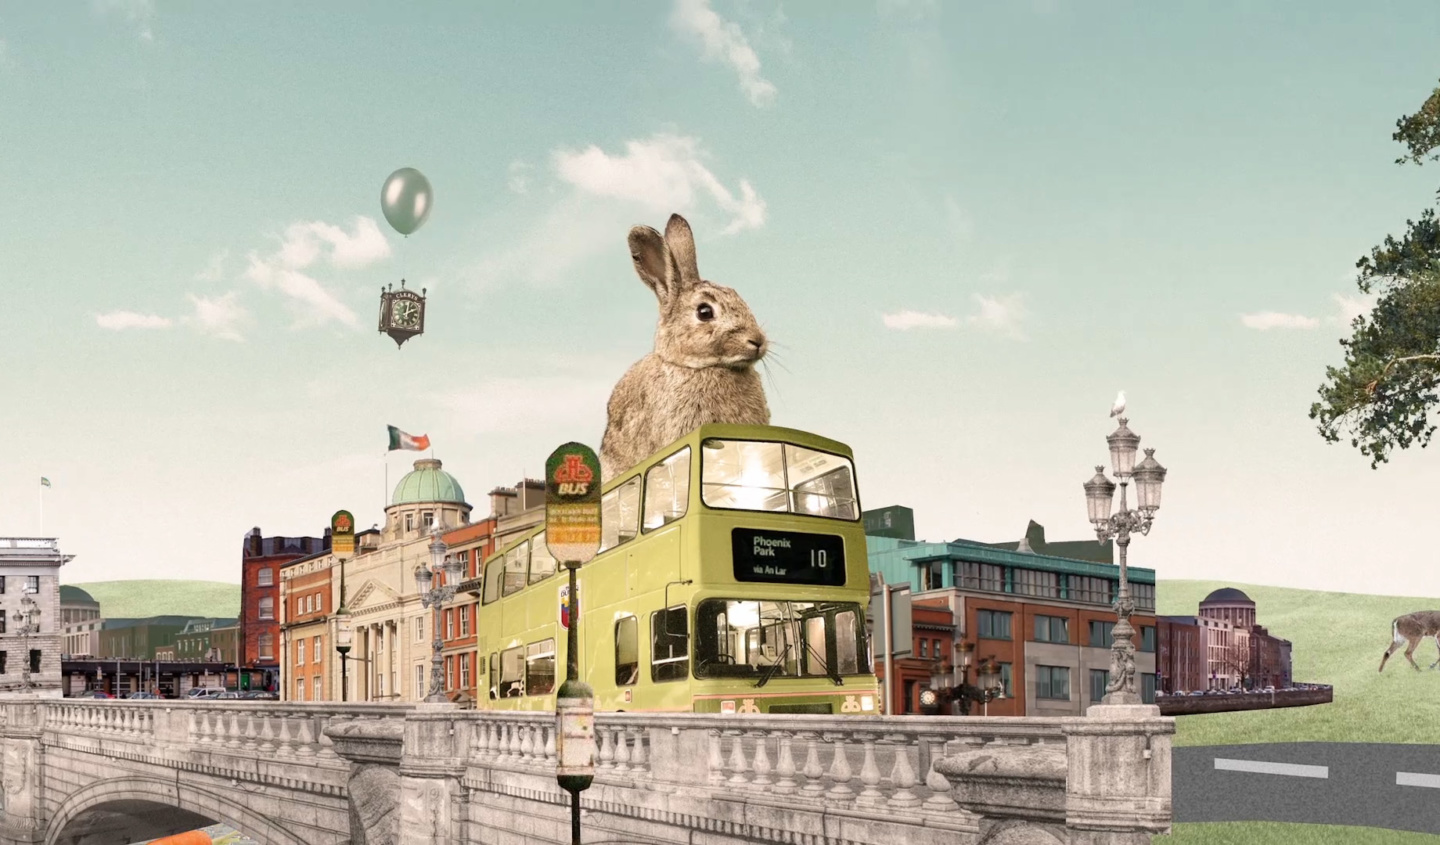 """The Legend of the Bunny on the Bus"" - Our latest production with Televisor studio for Dublin Bus."